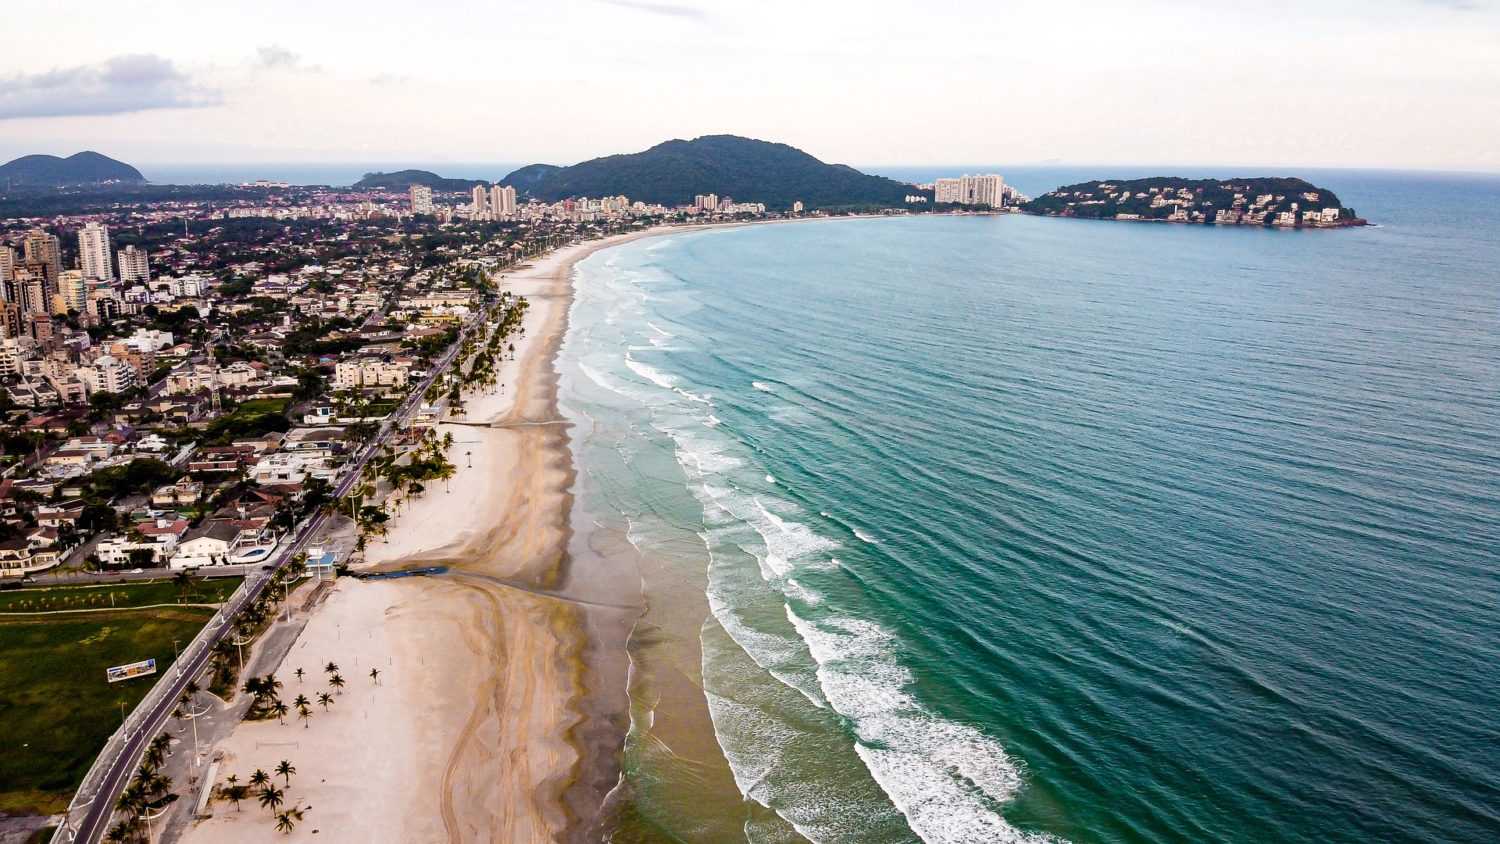 Vista aérea do mar em Guarujá, litoral de SP